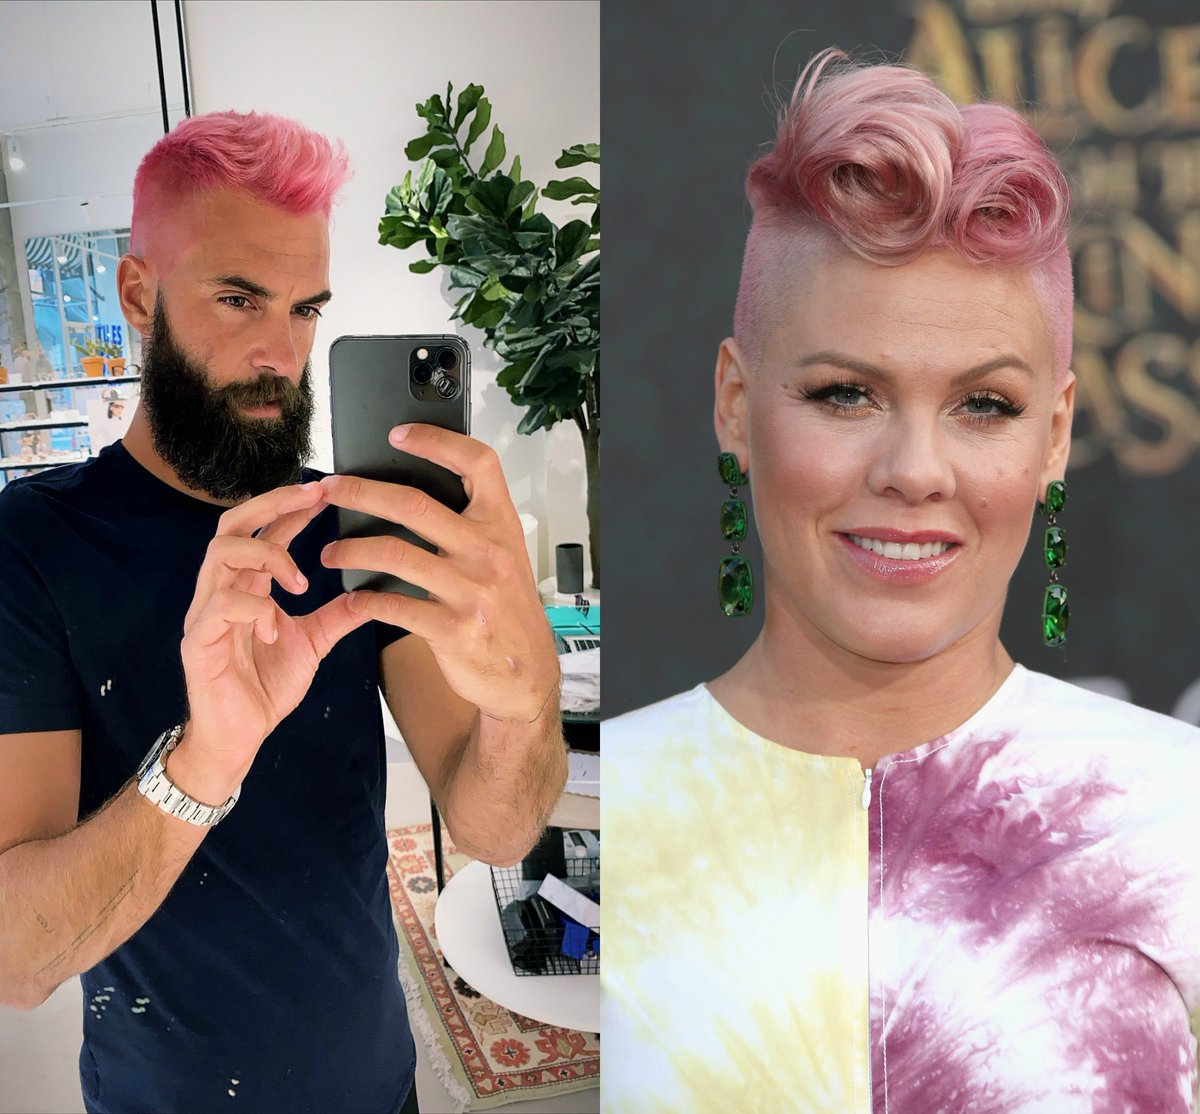 Revealed at last: Paires hair inspiration 😉 📷: @benoitpaire (IG) | @Pink